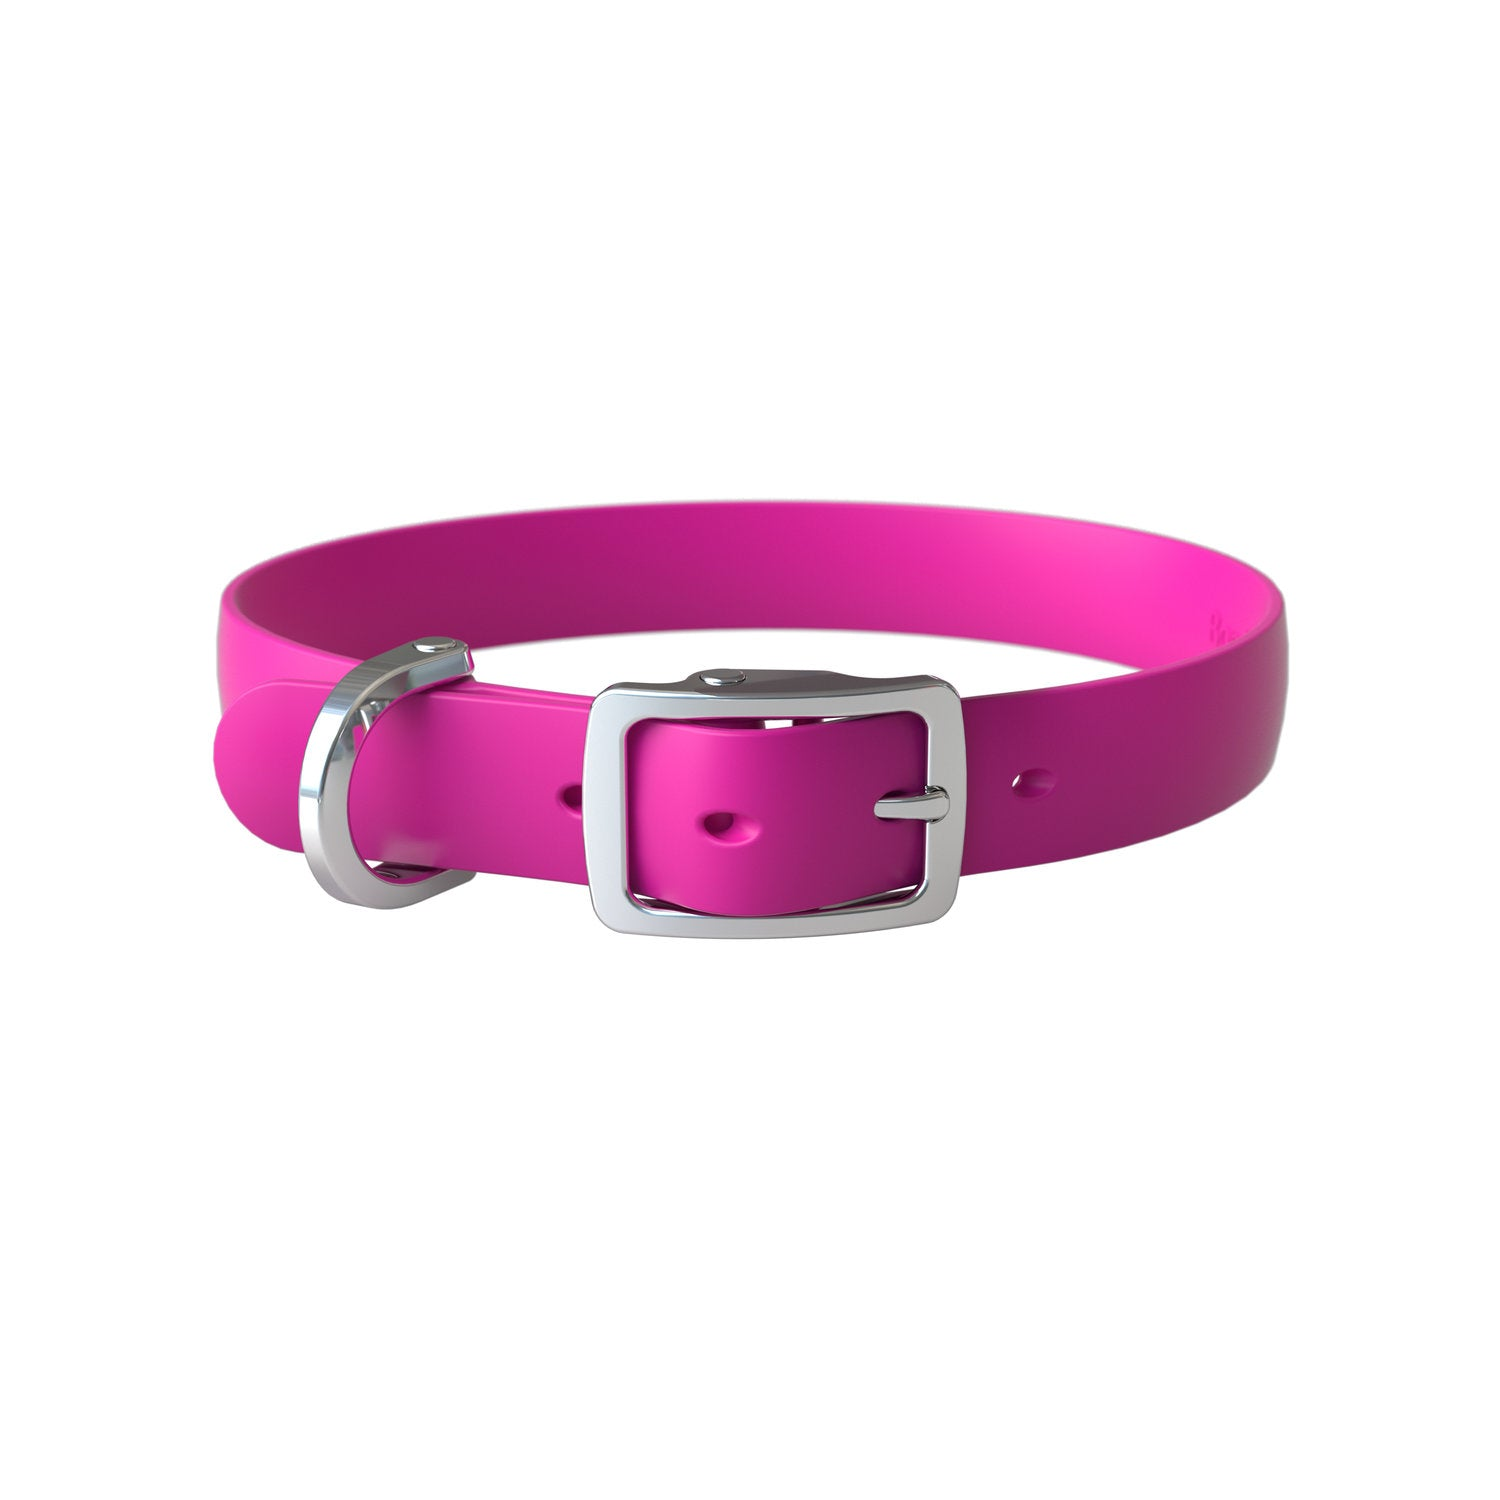 BOND Collar - Raspberry